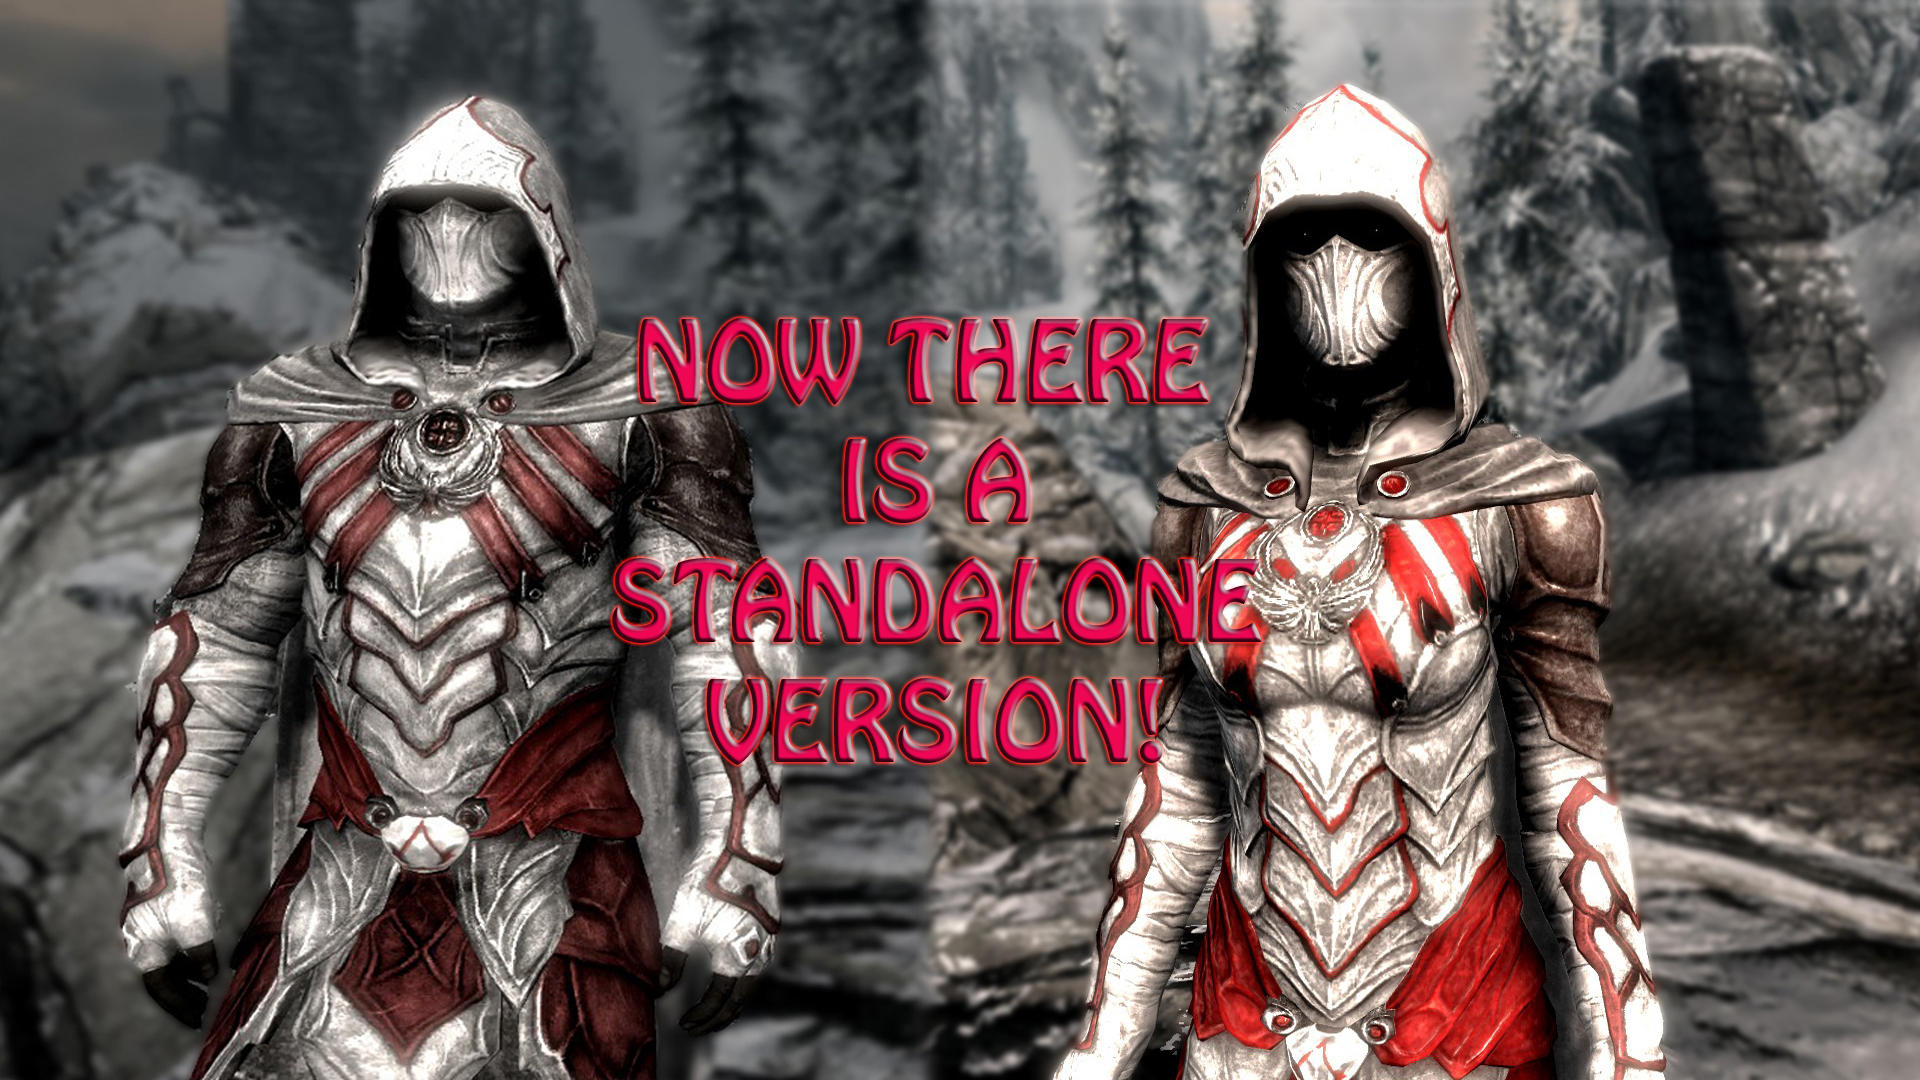 Assassins creed armor Standalone now up